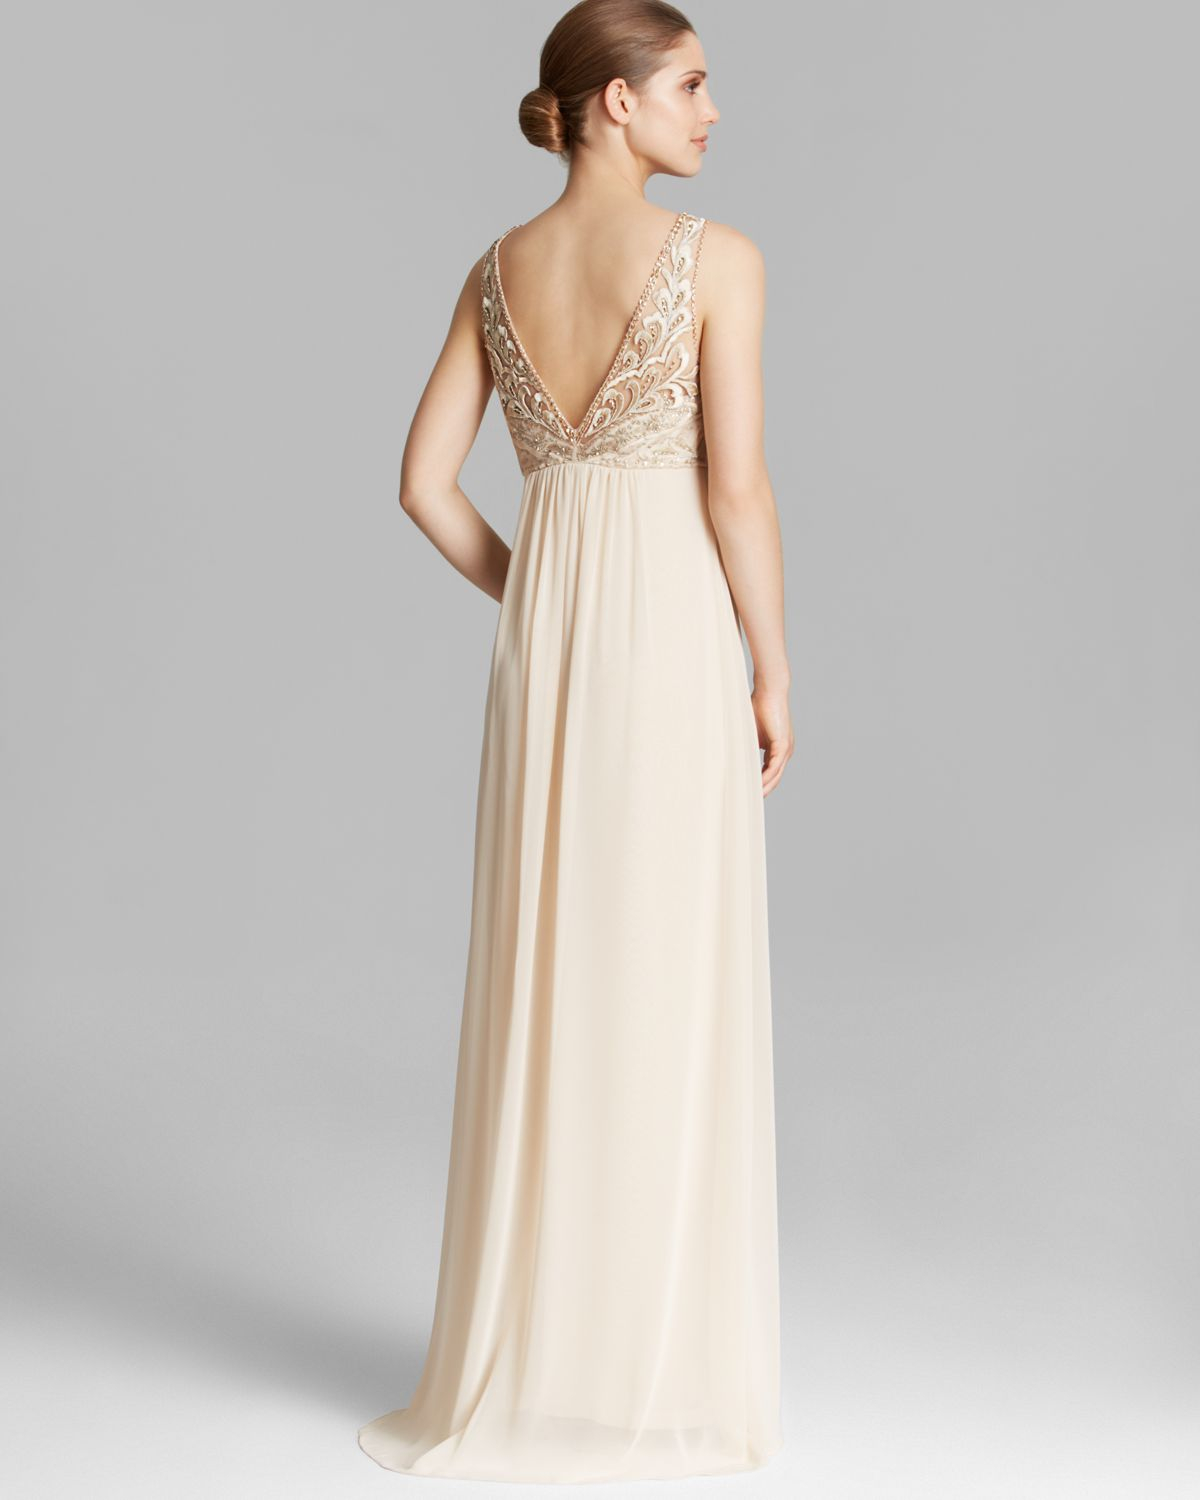 Lyst - Sue Wong Sleeveless Beaded Flyaway Gown in Natural